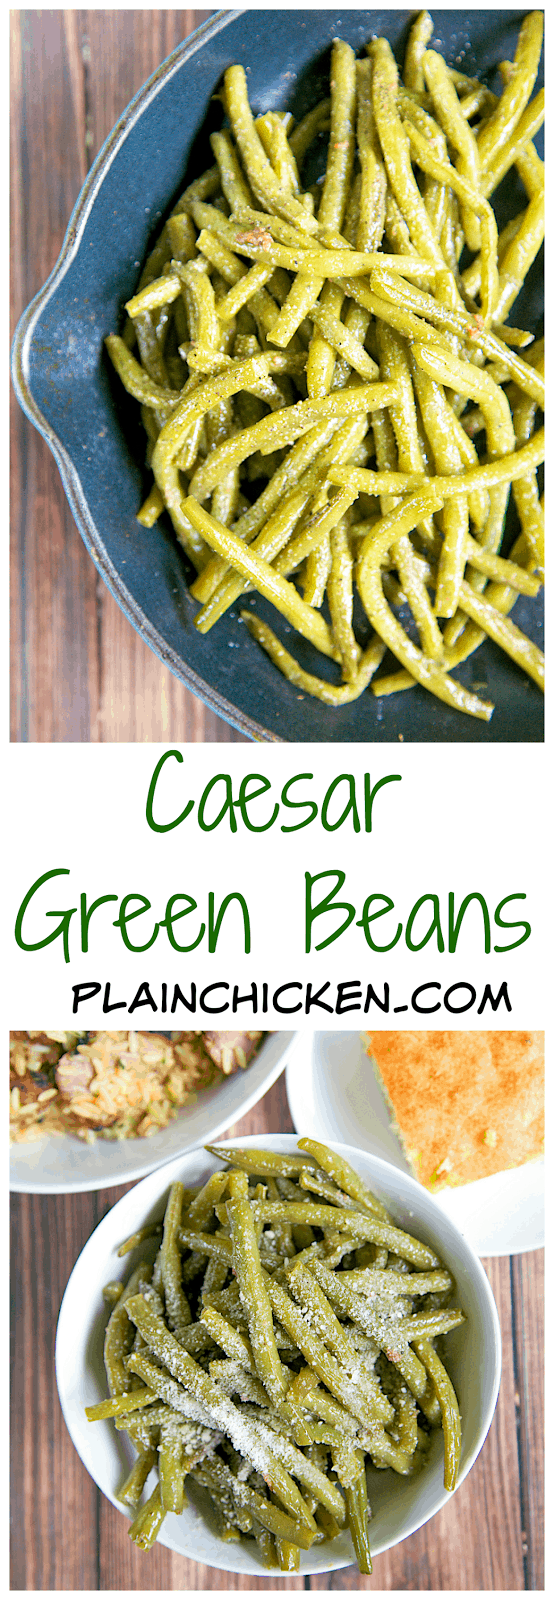 Caesar Green Beans Recipe - quick and easy side dish - only 3 ingredients! Cook green beans and then sauté in Caesar dressing. Ready in minutes. SOOOO good!! Double the recipe. These don't last long in our house!